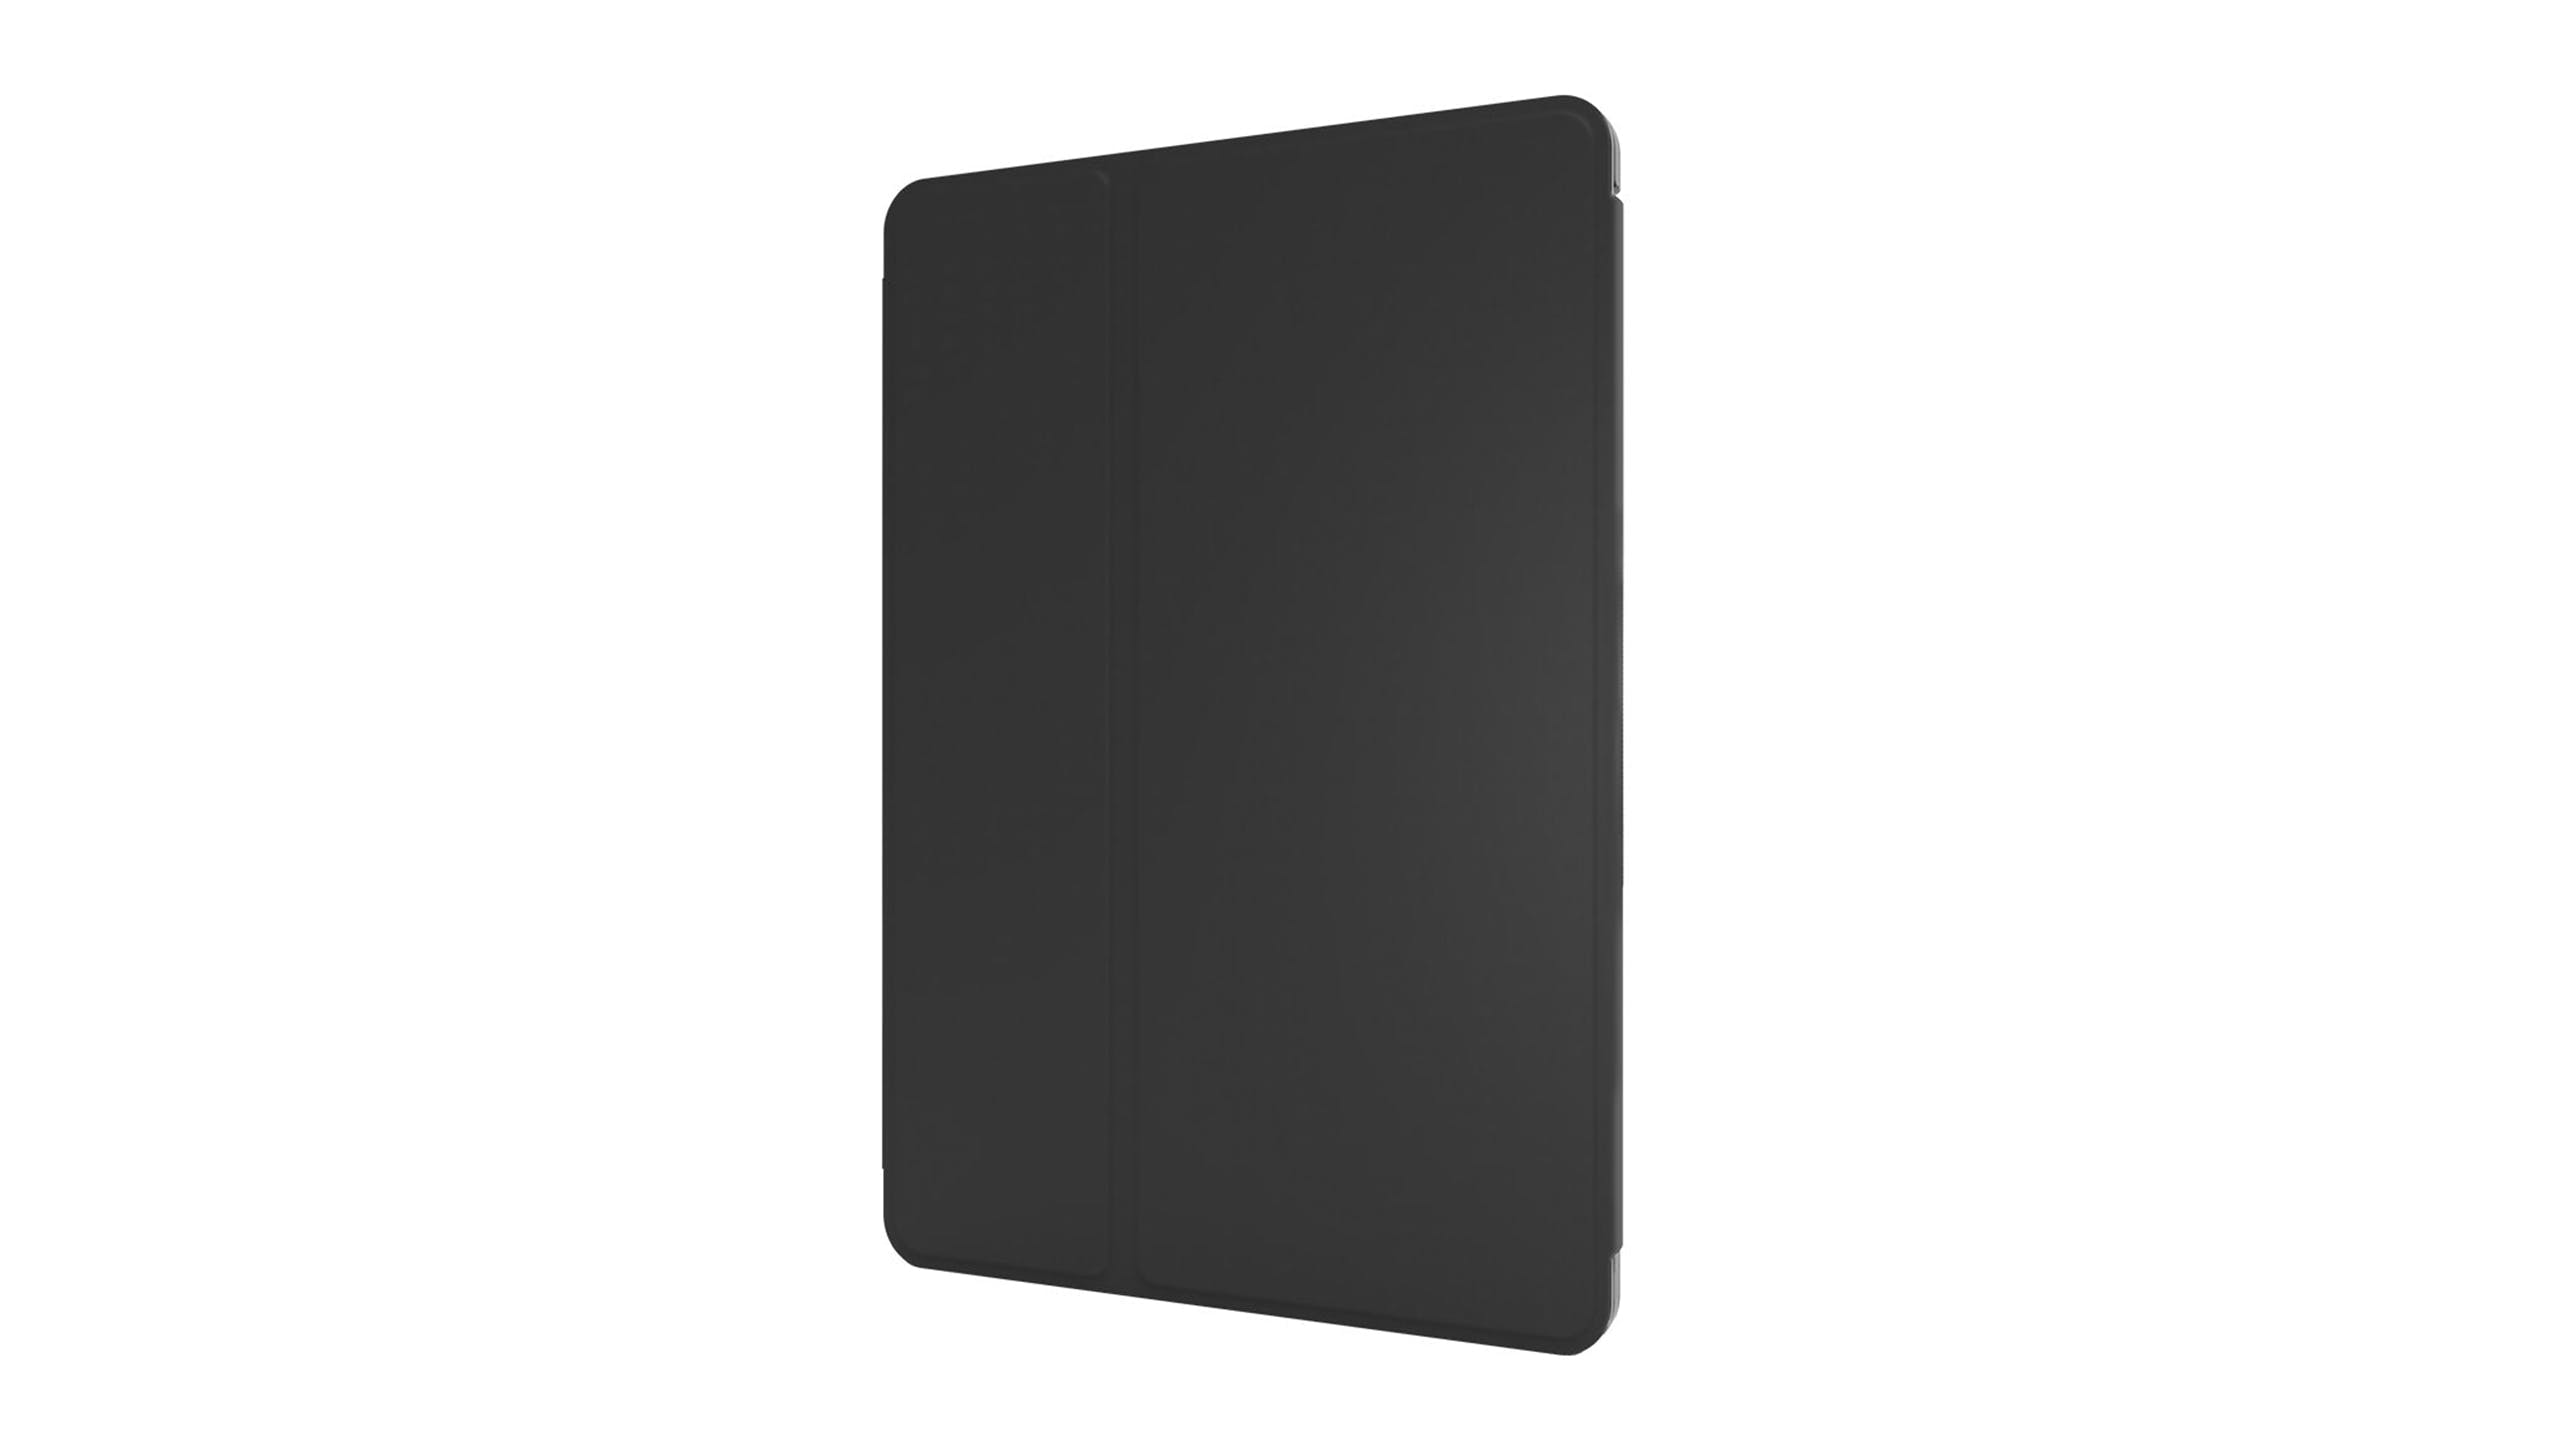 STM Studio Case for iPad 7th Gen/Air 3/Pro 10.5 - Black/Smoke